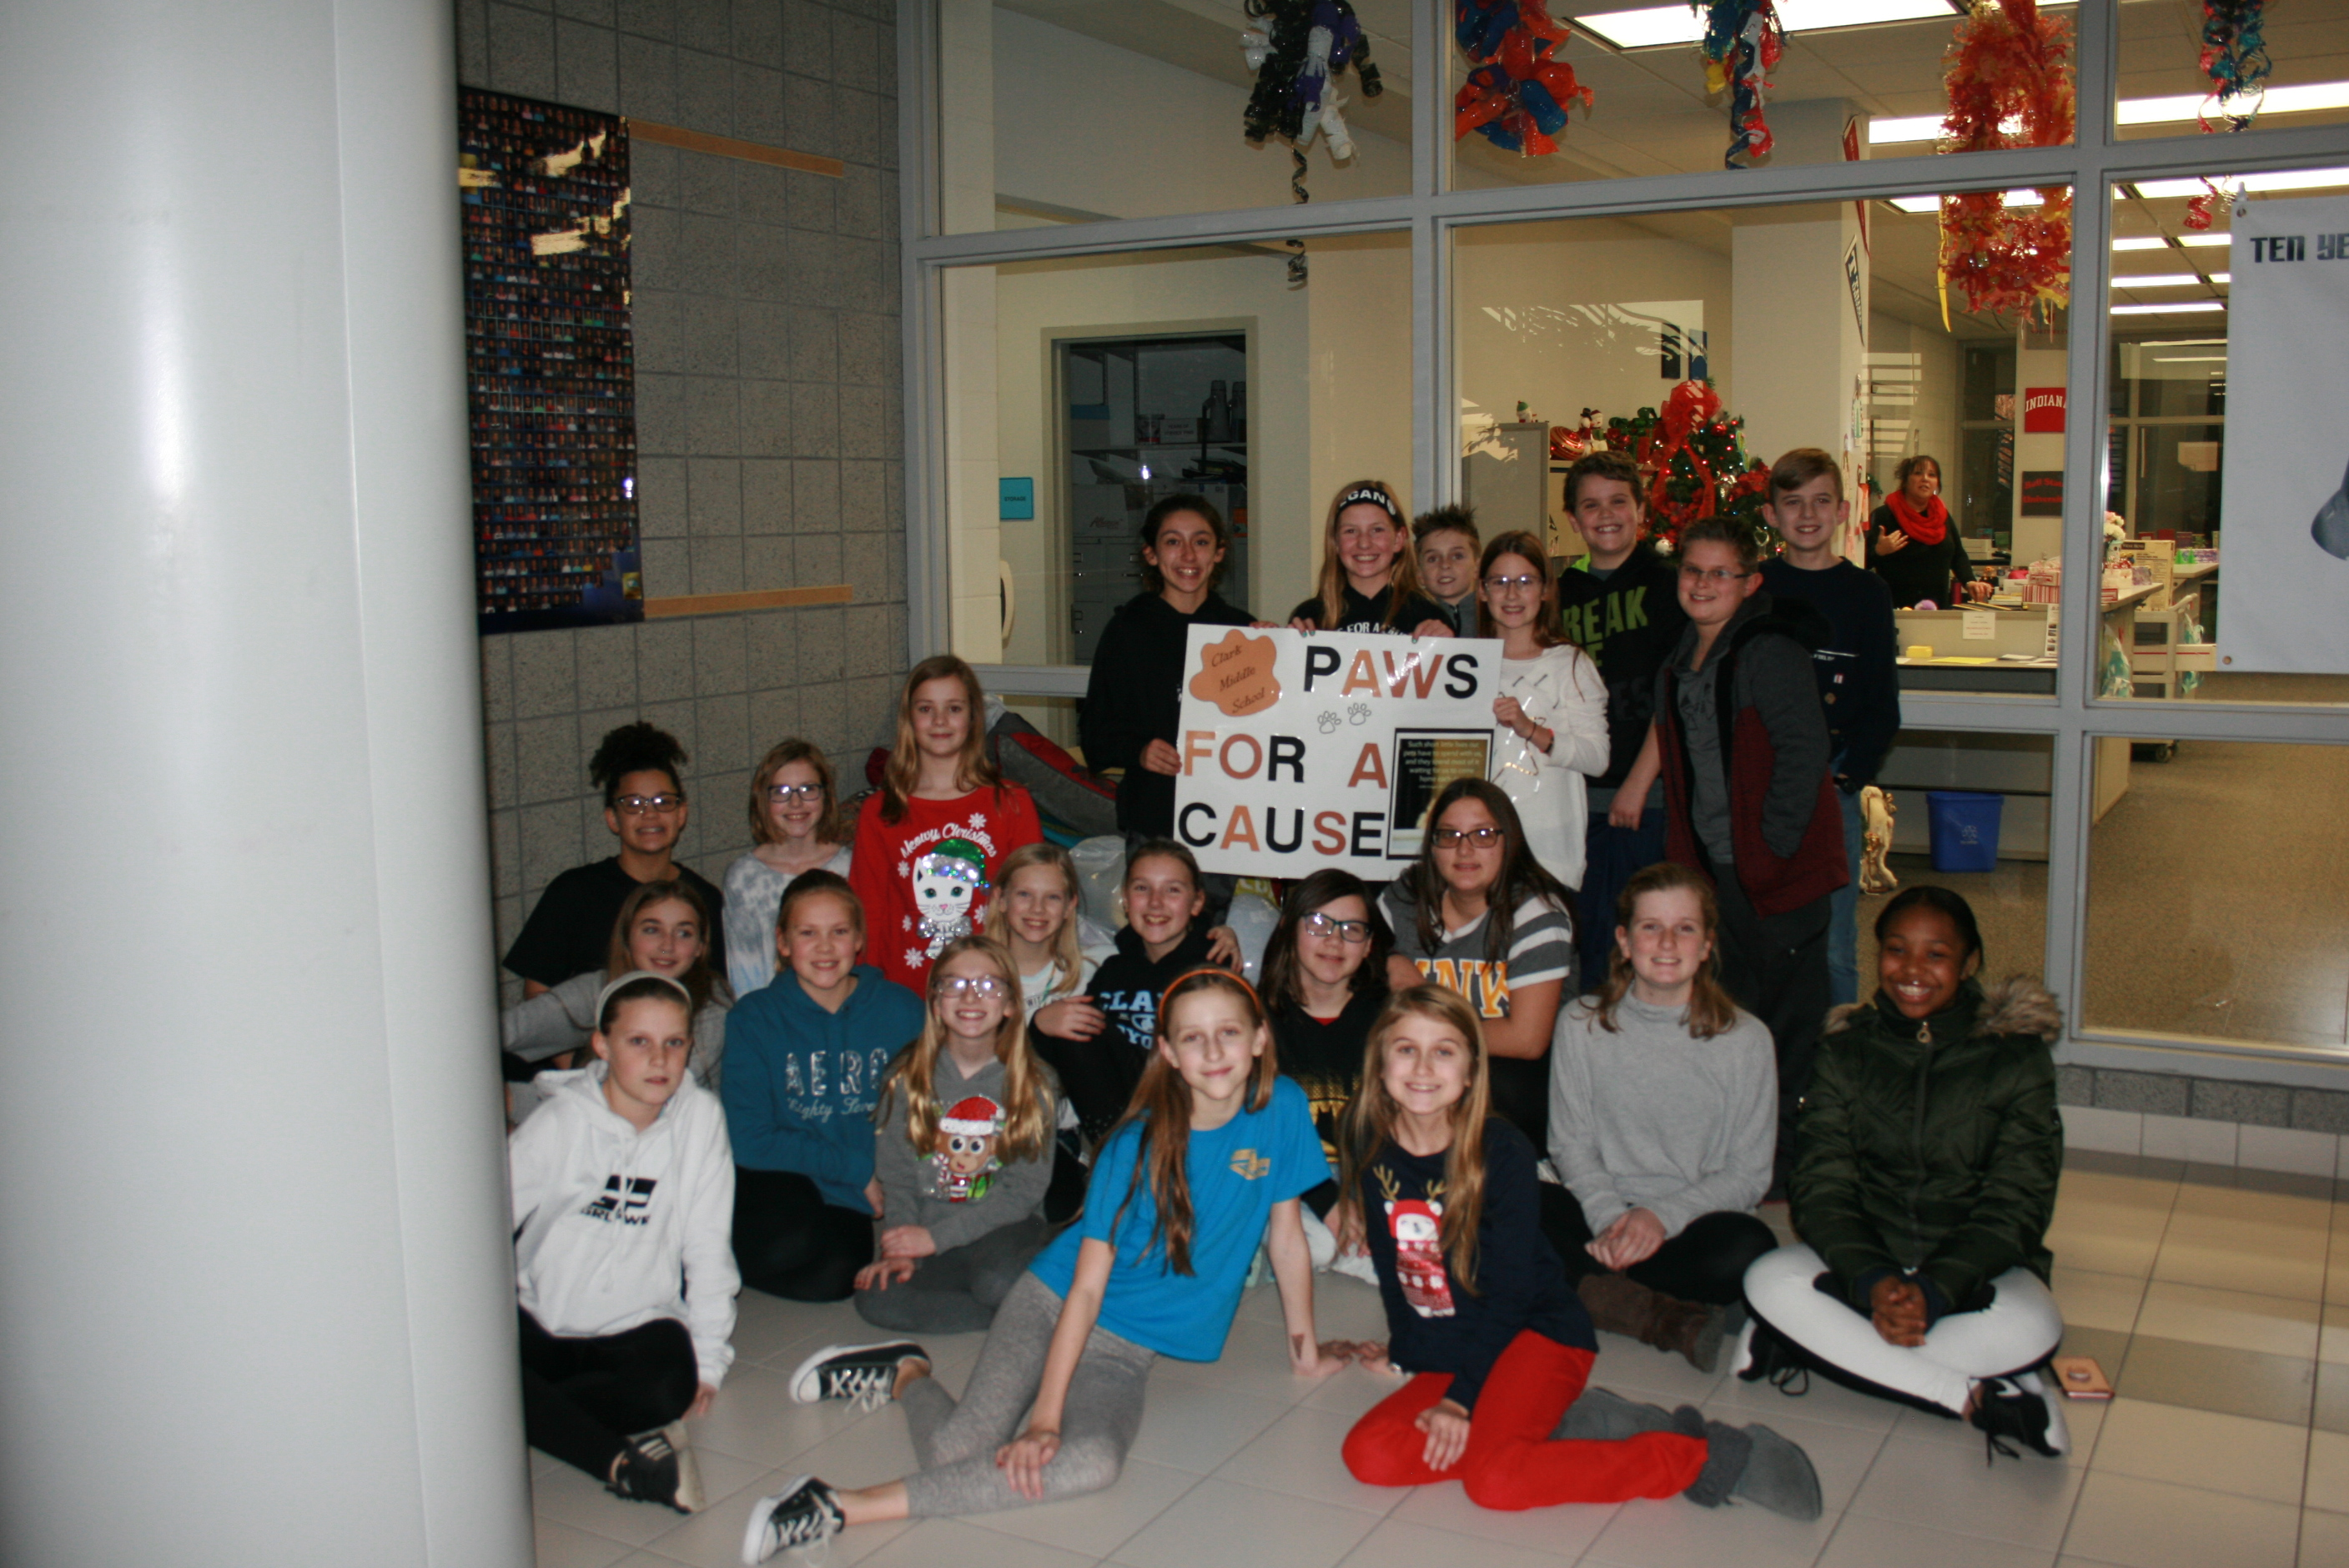 Paws for a Cause club collects items for animal control.